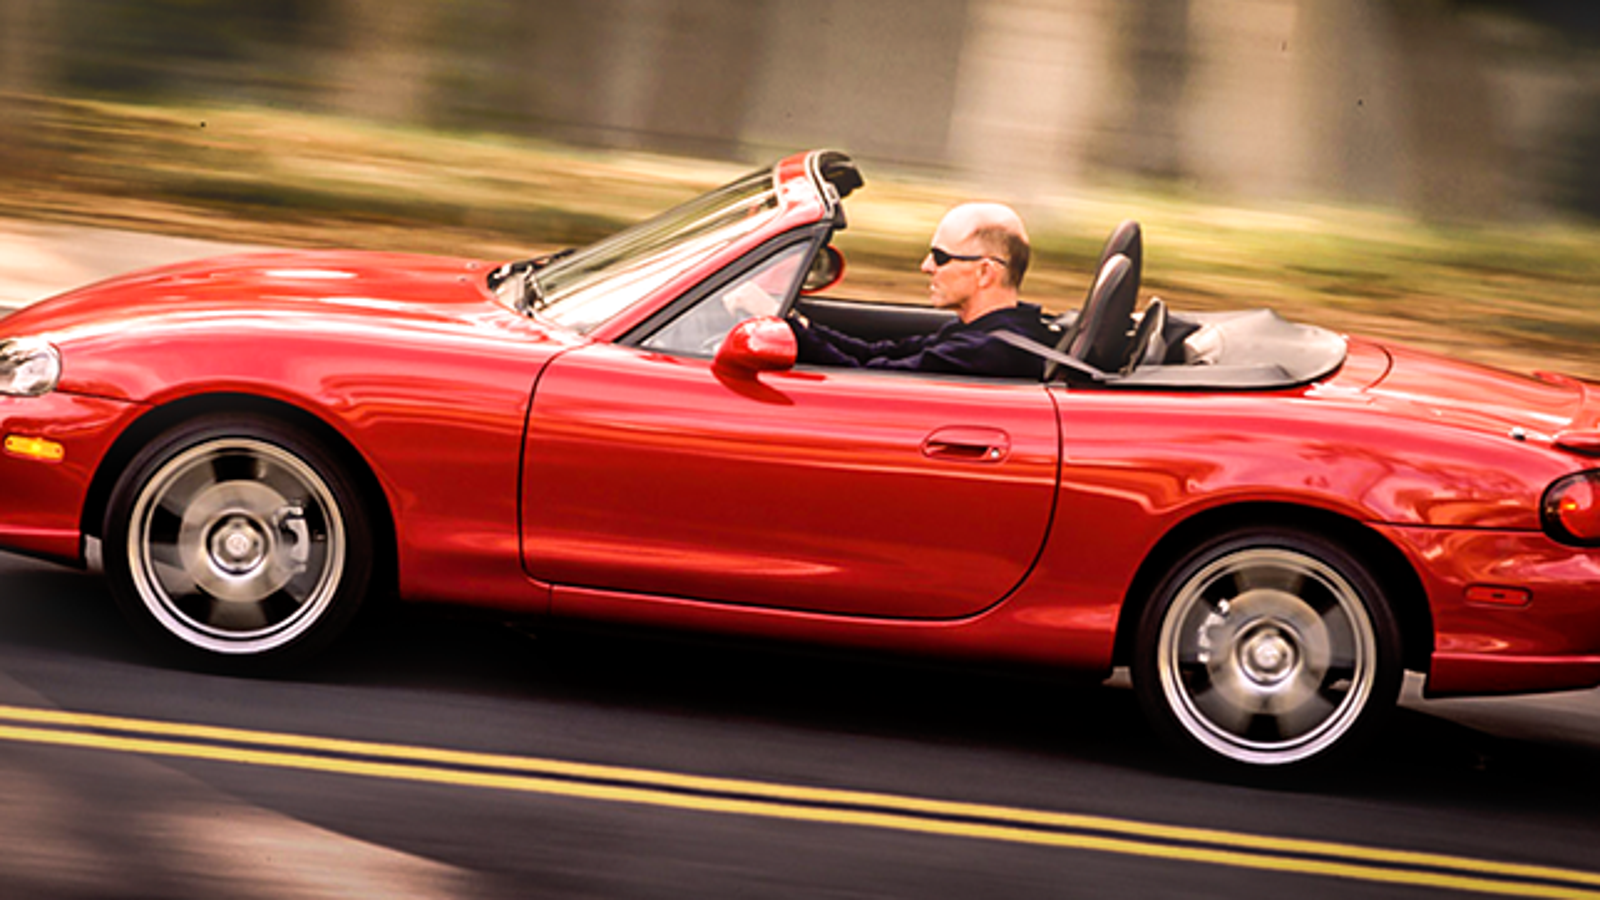 Cars Under 4000: EBay Challenge: The Most Dependable Cars For Under $4,000